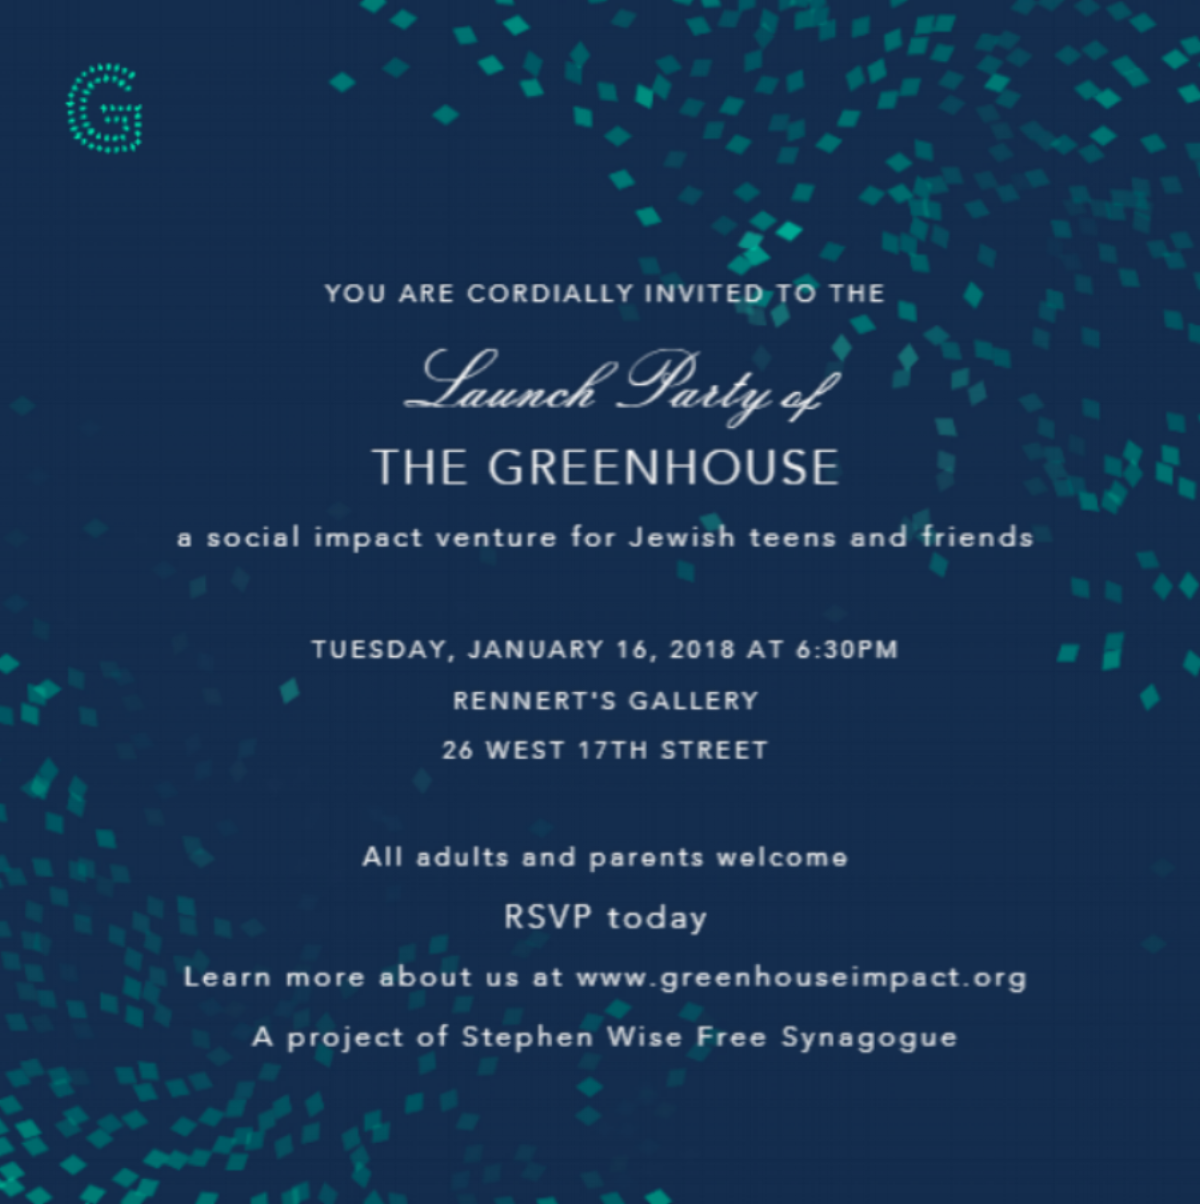 RSVP to join us on Jan 16th in NYC. - The Greenhouse aims to cultivate the next generation of social innovators, change-agents and entrepreneurs through immersive experiences for teens that introduce new knowledge and place universal values and current world issues into a Jewish context.We offer Jewish teens and their peers year-round opportunities to develop tangible skills and real world experience aligned with the requirements of university programs and the future of work, while also gaining access to experts, industry leaders, and inspiring venues.